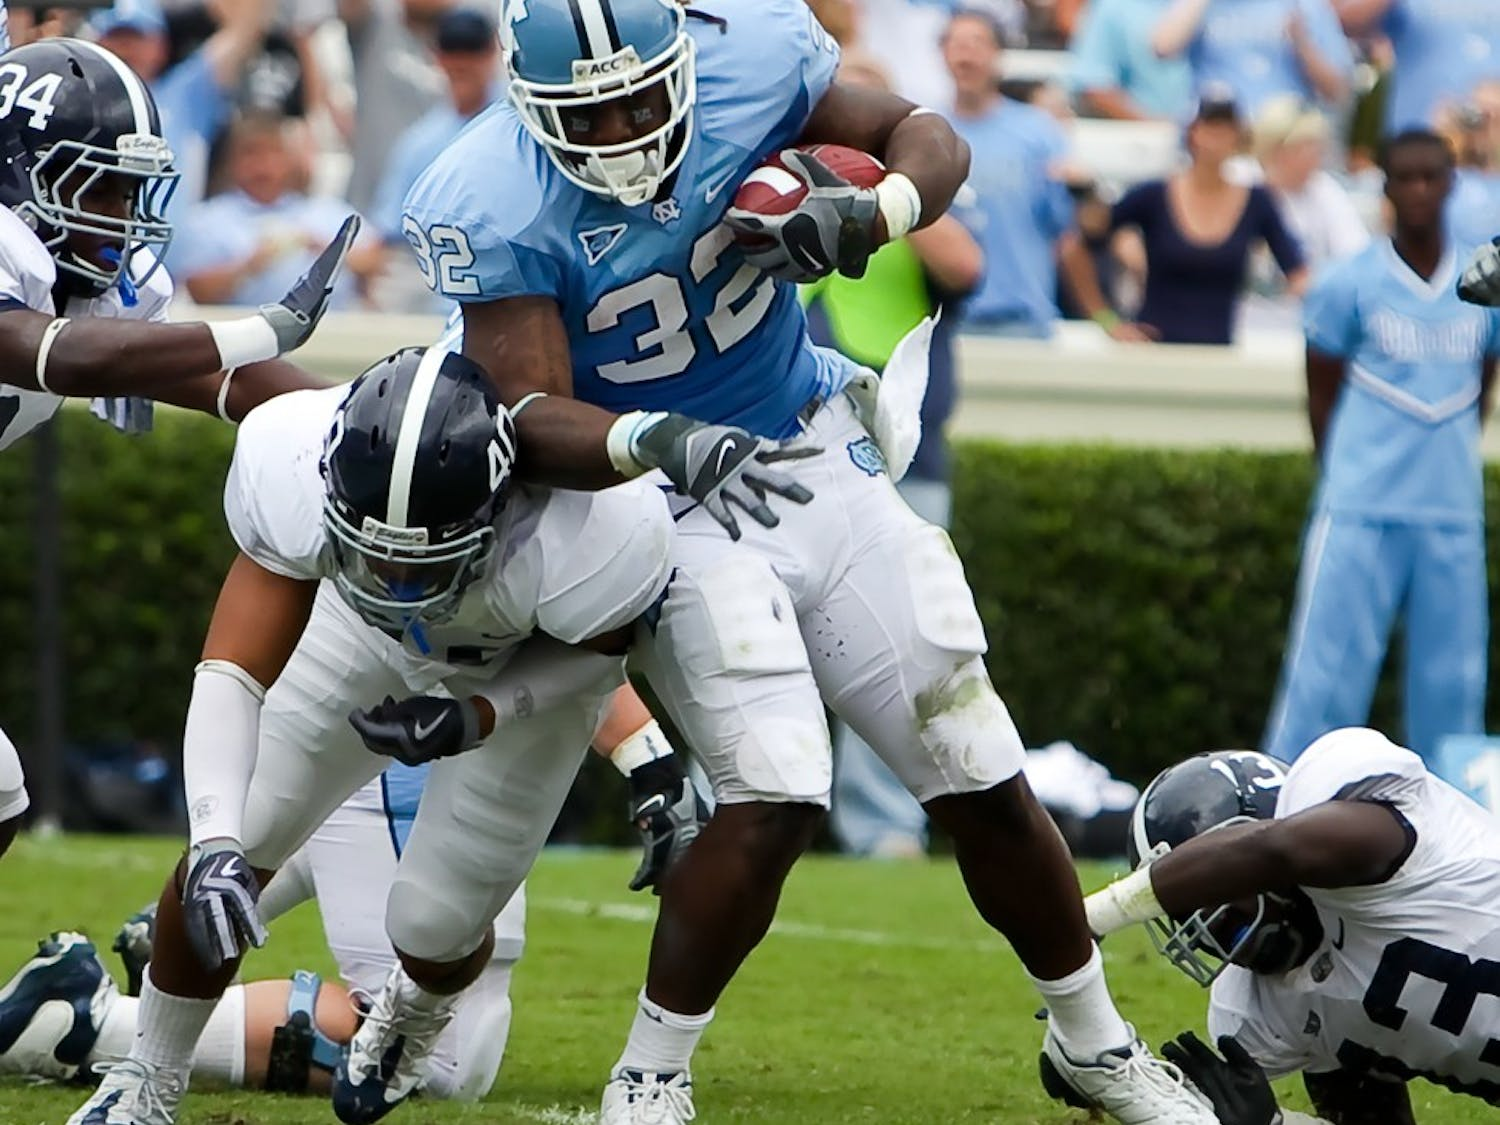 Running back Ryan Houston will head UNC's running game with seniors Shaun Draughn and Johnny White. The trio's offensive production will help determine Saturday's outcome in UNC's season opener against LSU.